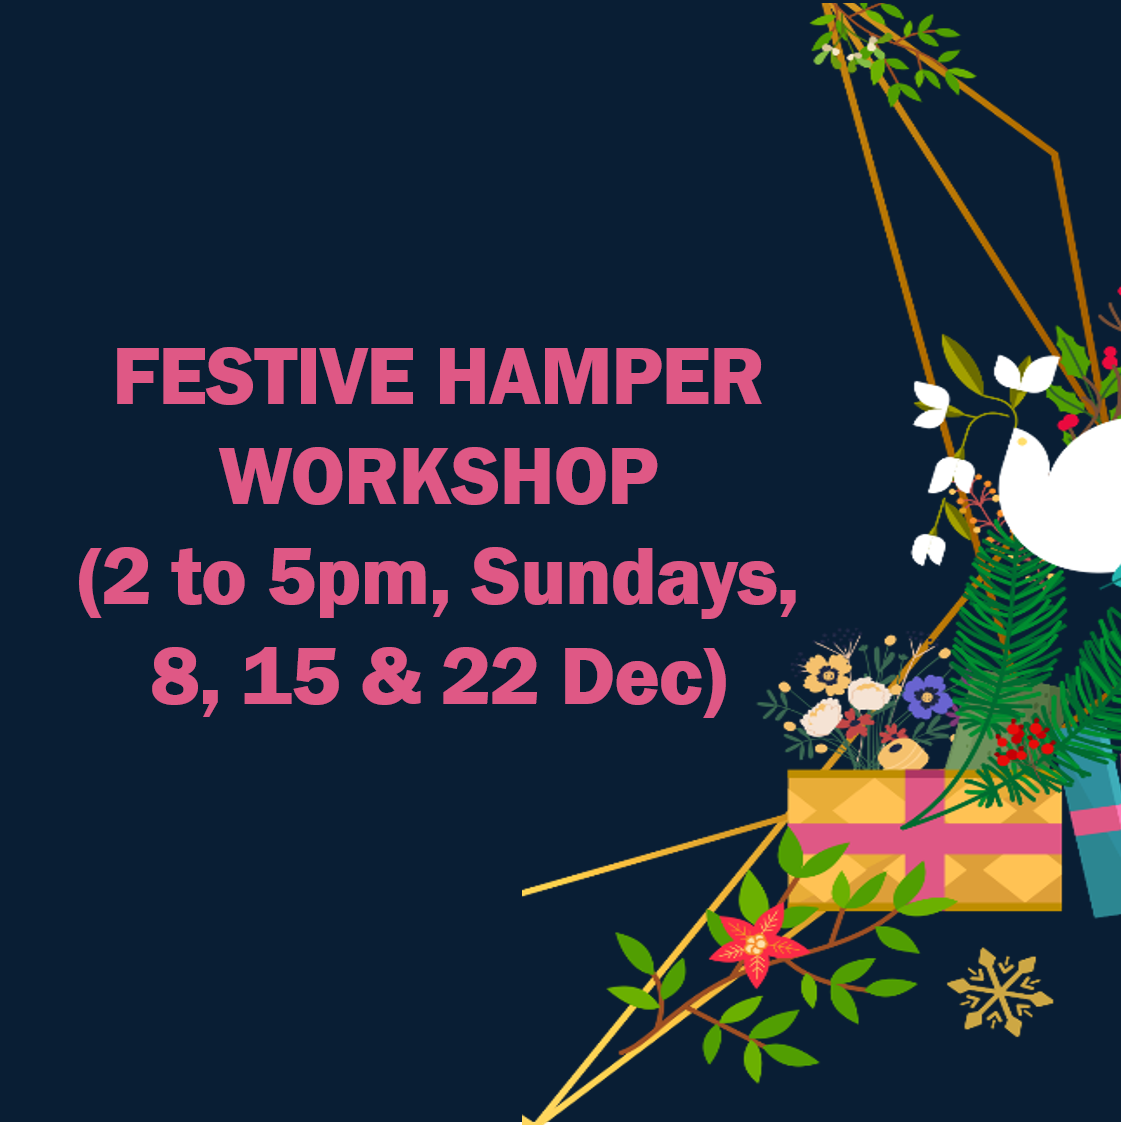 Festive Hamper Workshop